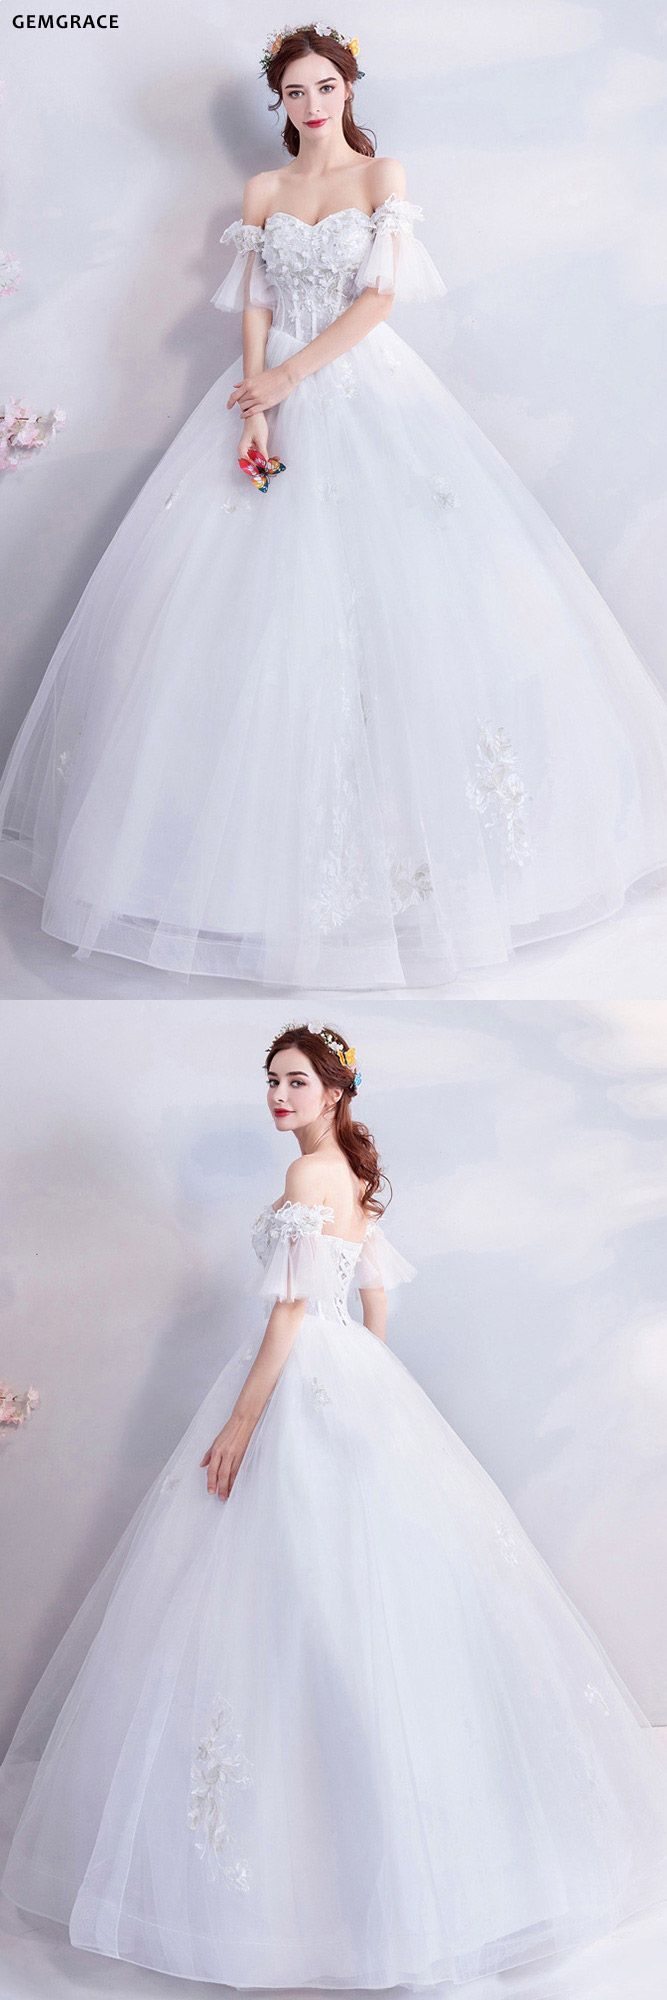 be7569107803e Fairy Butterfly Sleeve Ball Gown Wedding Dress With Off Shoulder #T69142 at  GemGrace. #